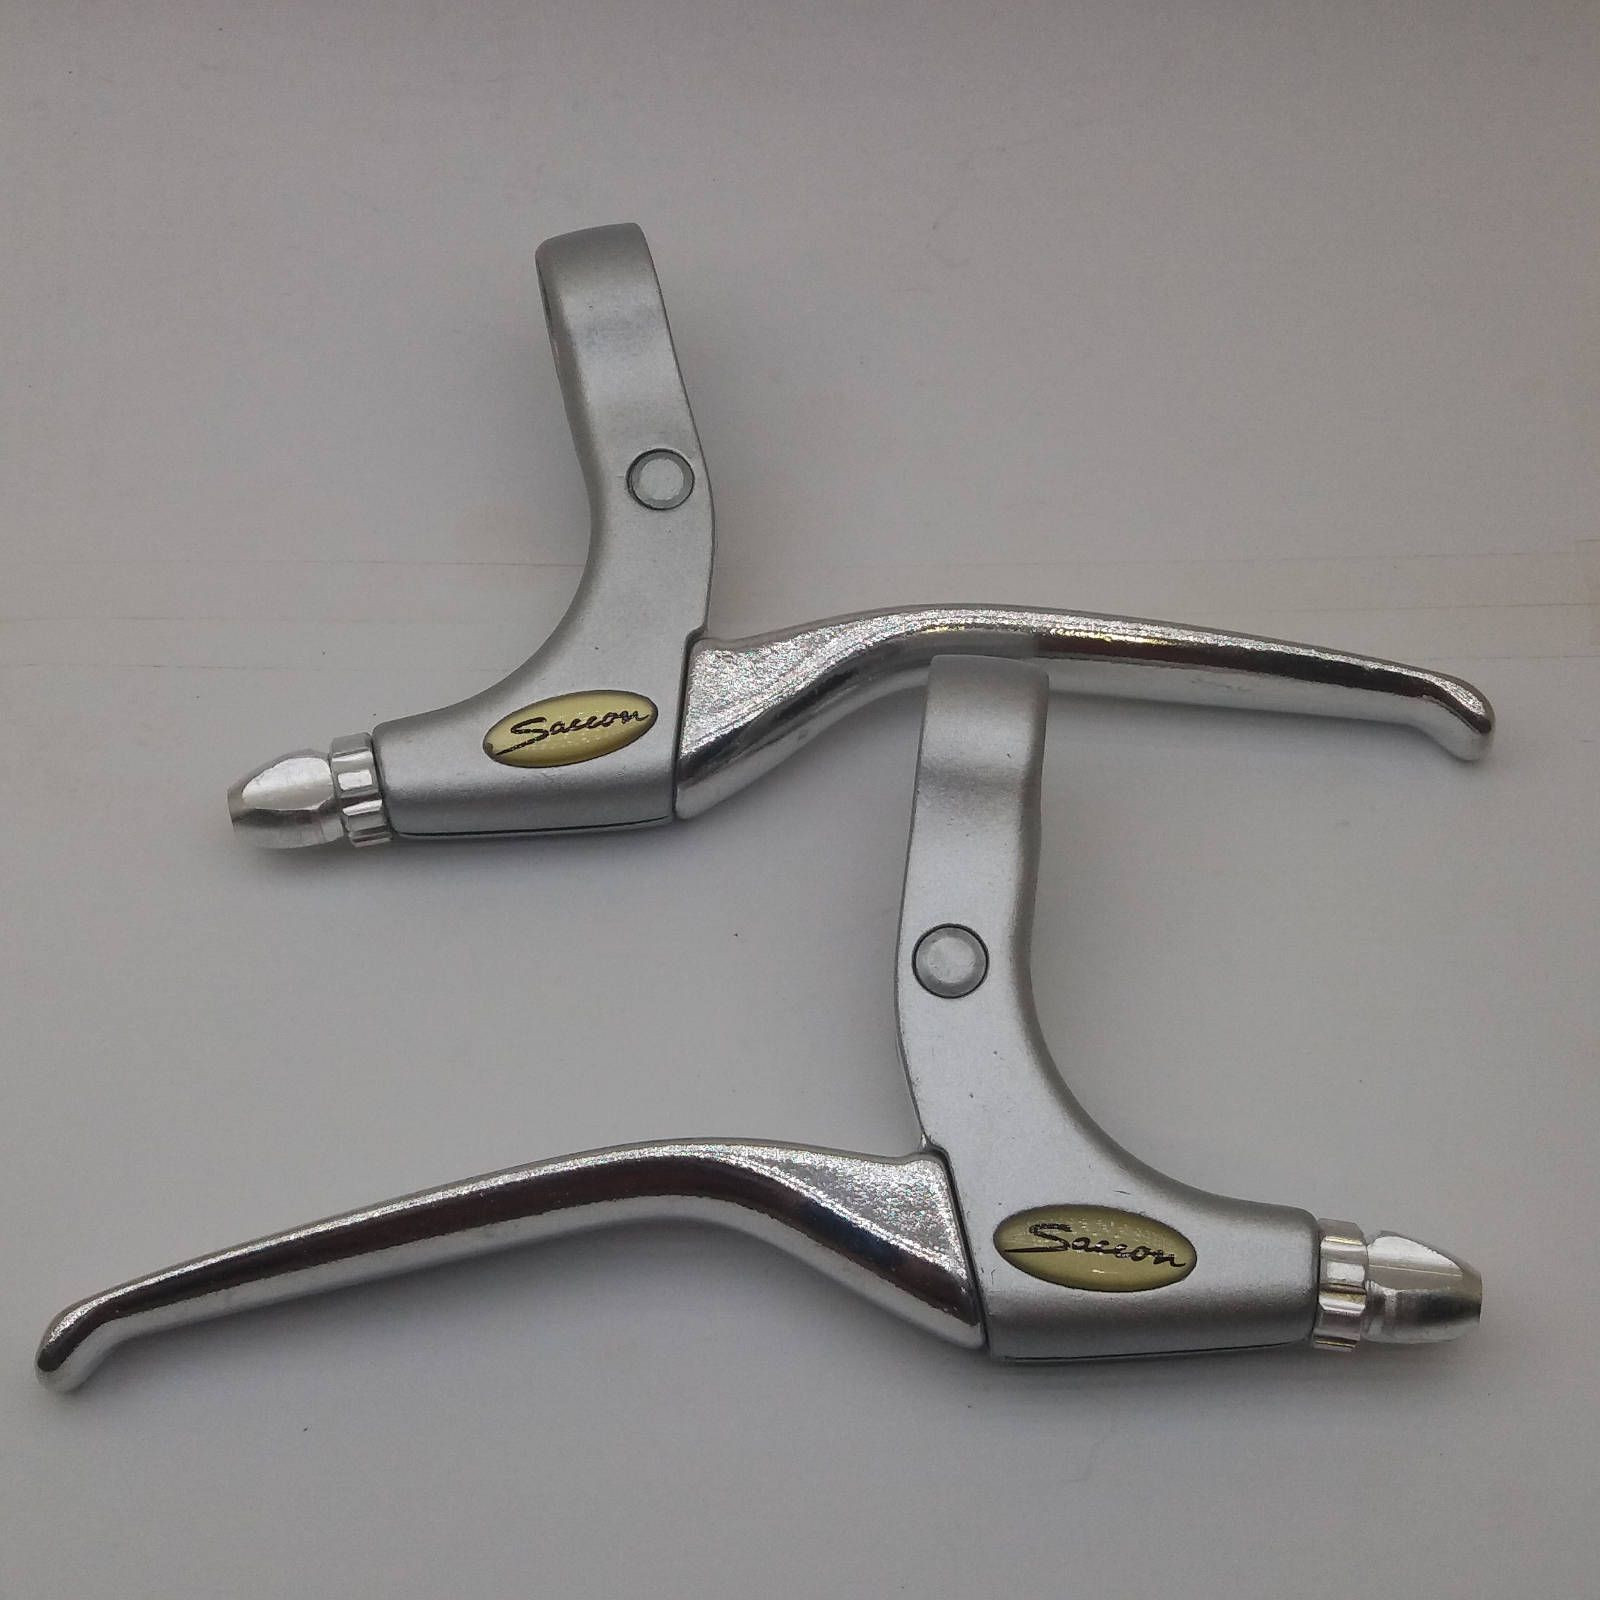 SET SAFETY BRAKE LEVERS BICYCLE RACING BIKES FIXIES W/DROP HANDLEBARS NOS